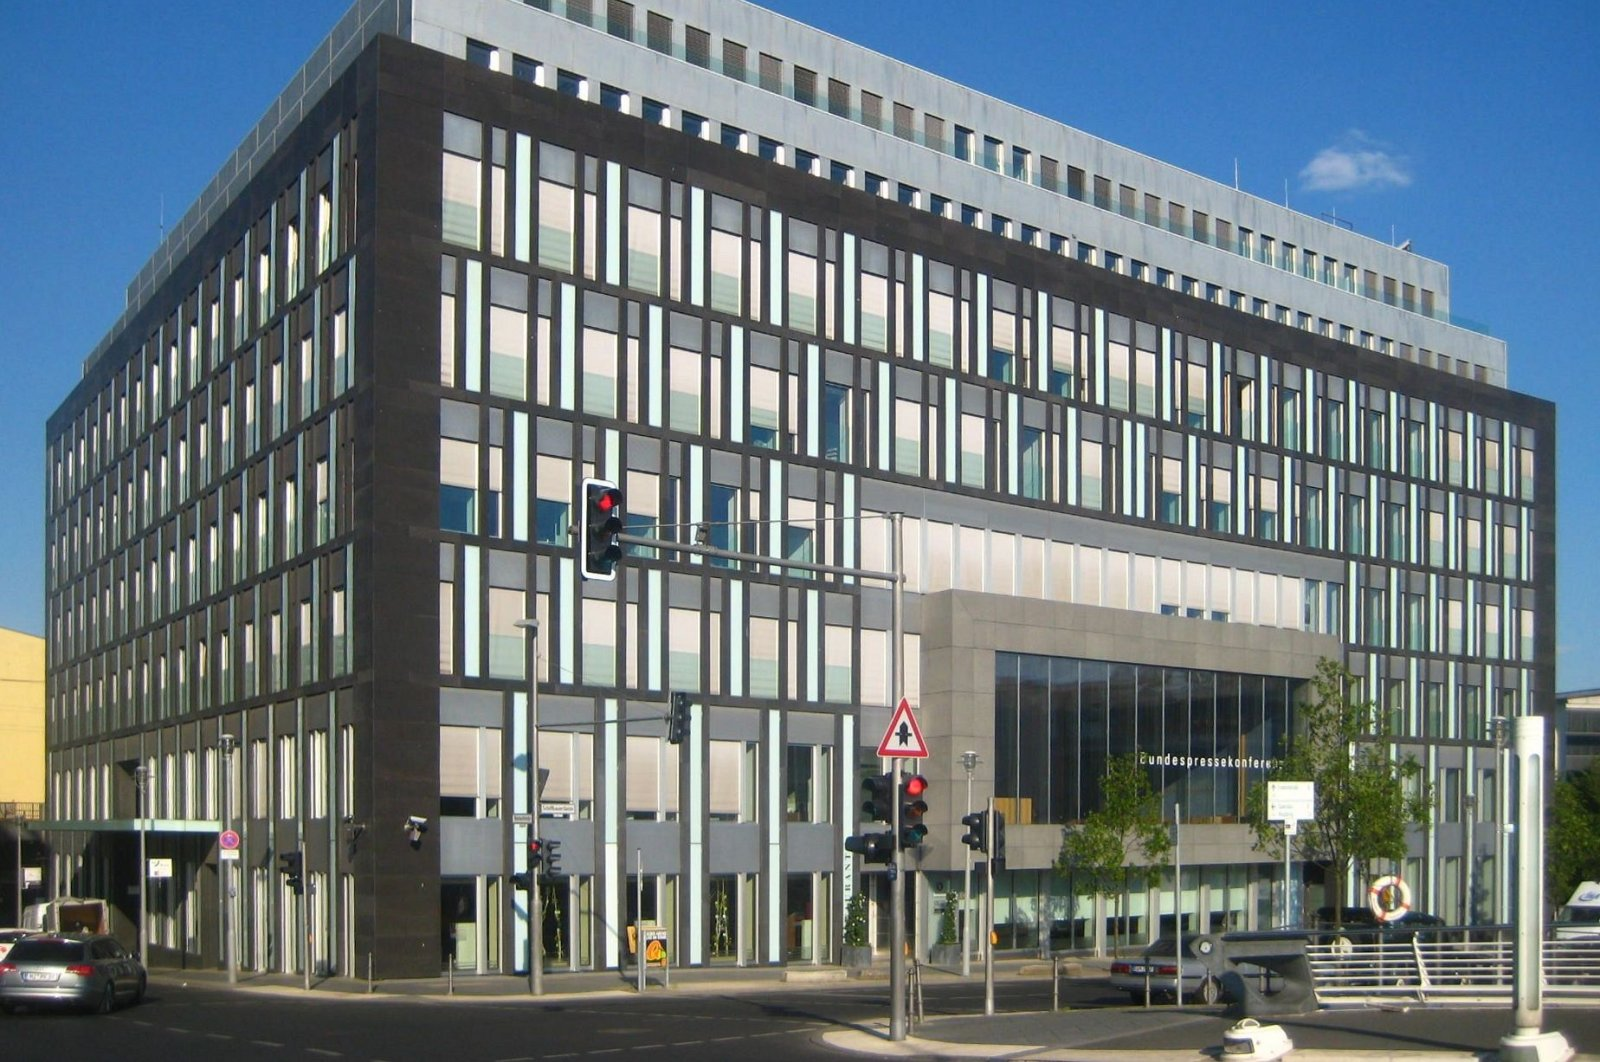 The House of the Federal Press Conference in Berlin where the TRT Deutsch office is located. (Wikipedia, Jörg Zägel)